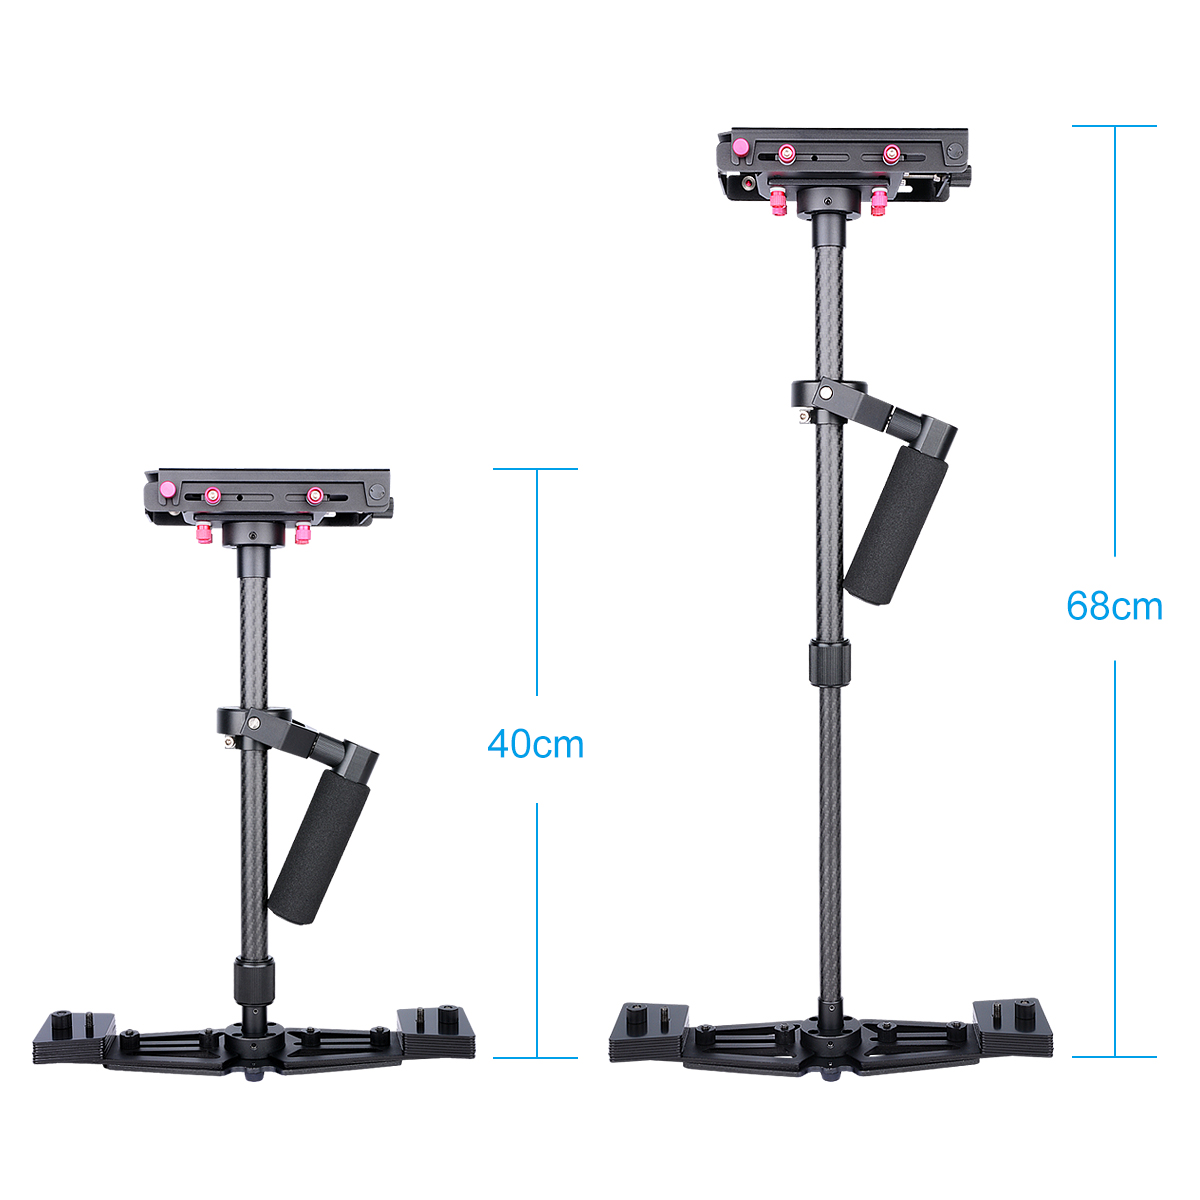 Handheld Dslr steadicam Shoulder Vest Smartphone 3 Axis Stabilizer Video Gimbal Camera Stabilizer